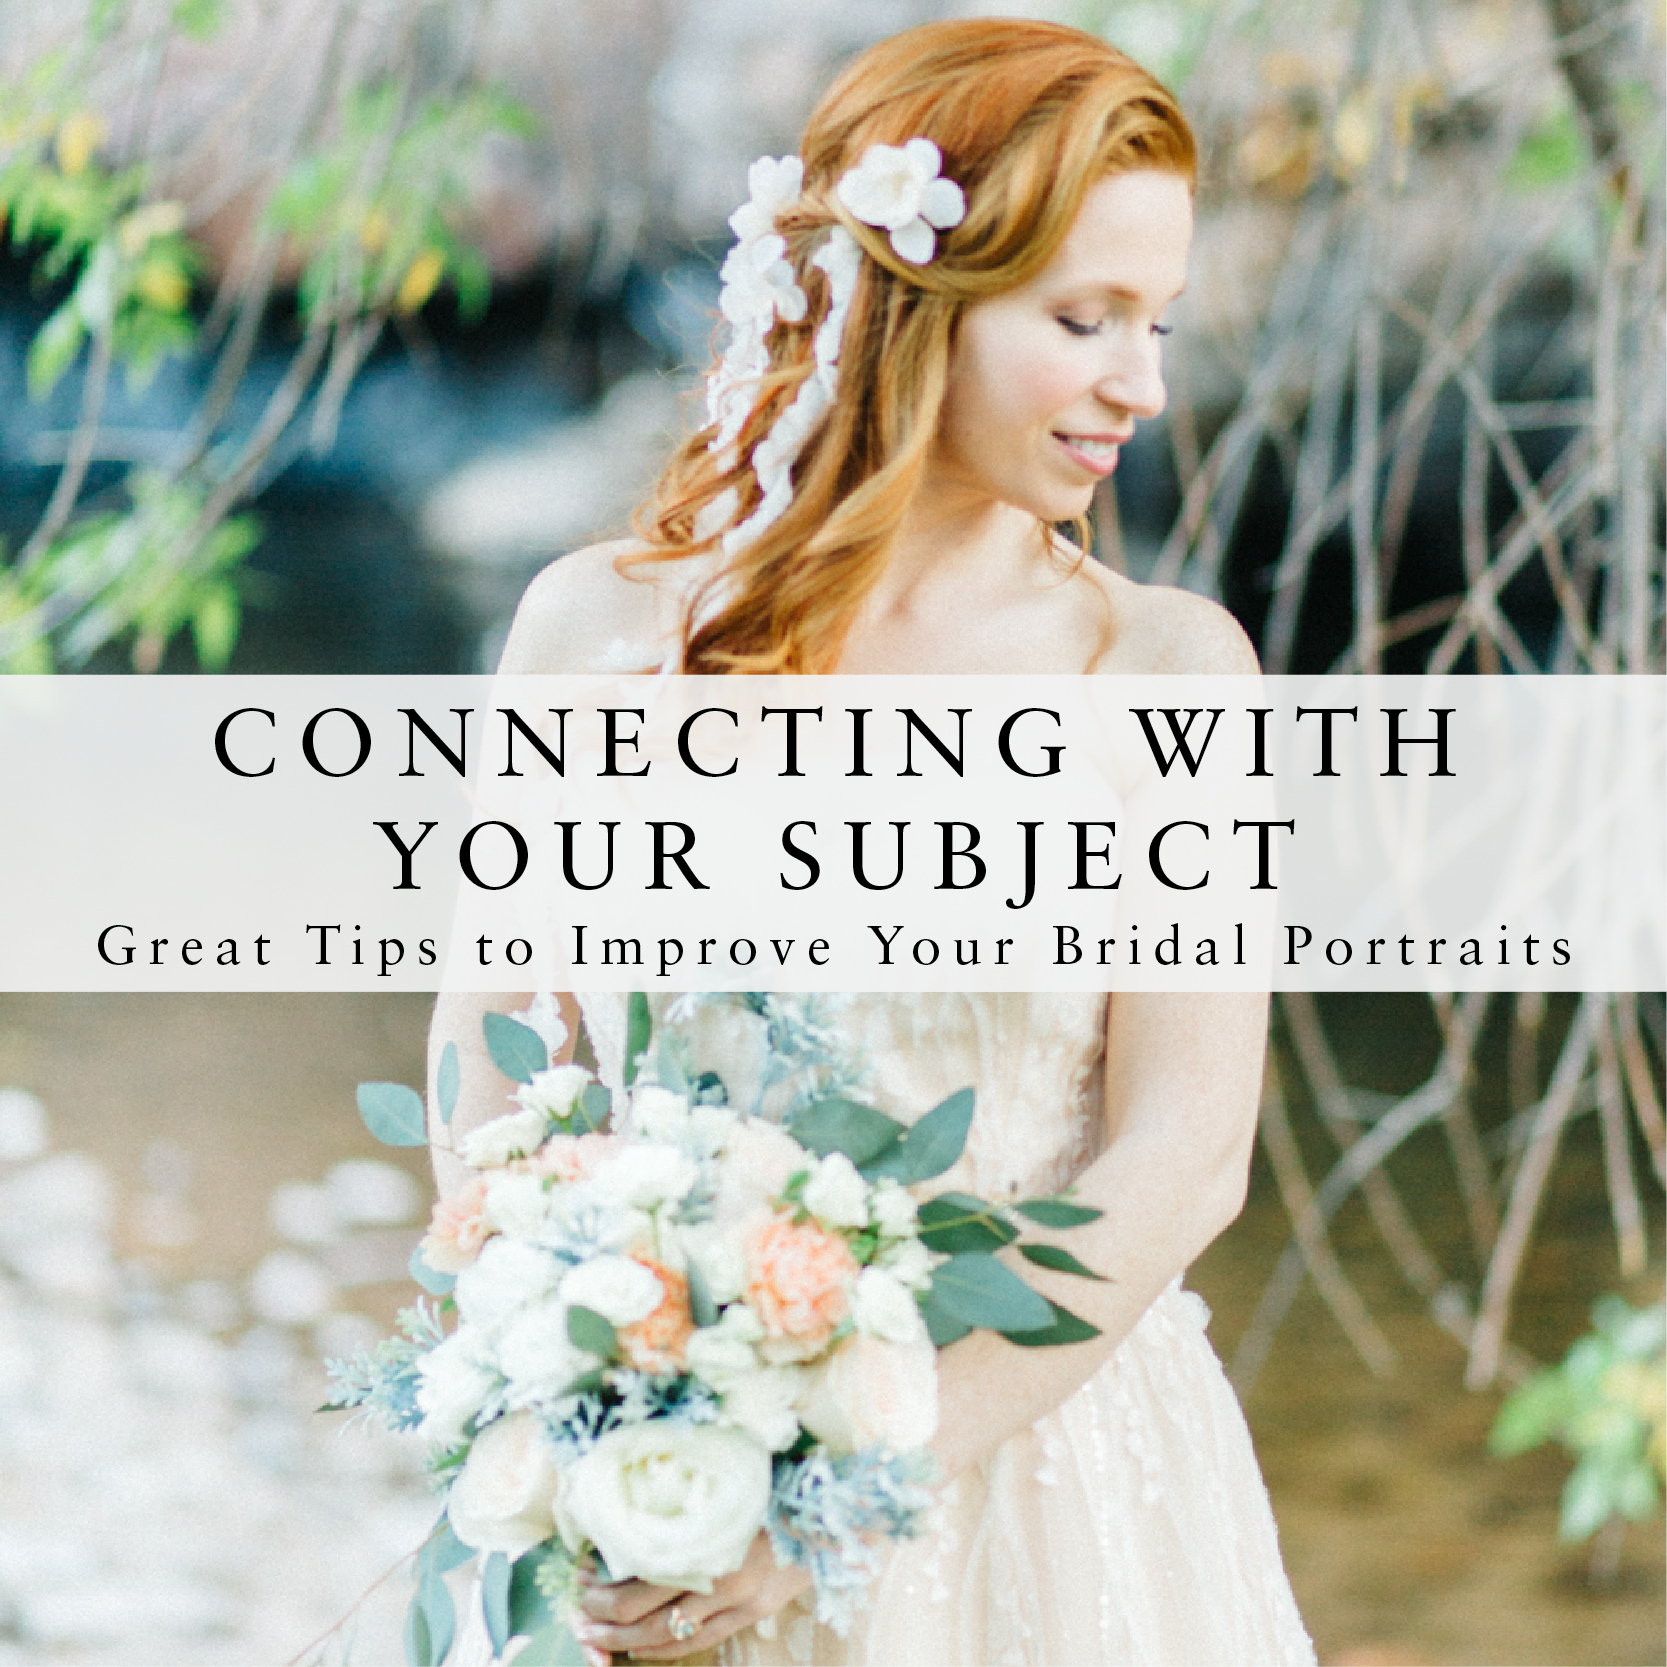 Connecting With Your Subject by Emily Sacco